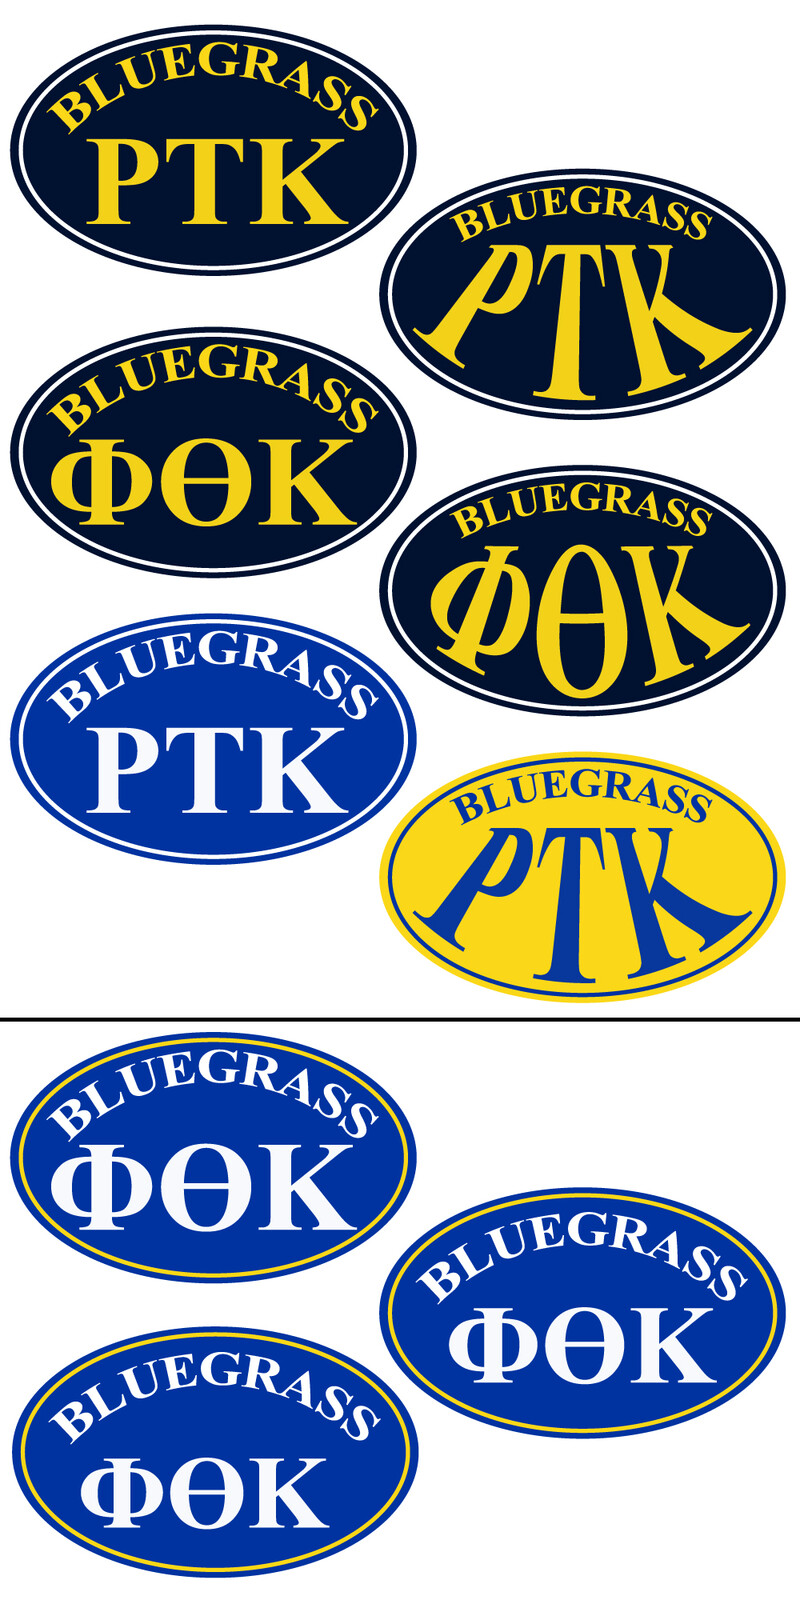 Earlier variations of the PTK sticker